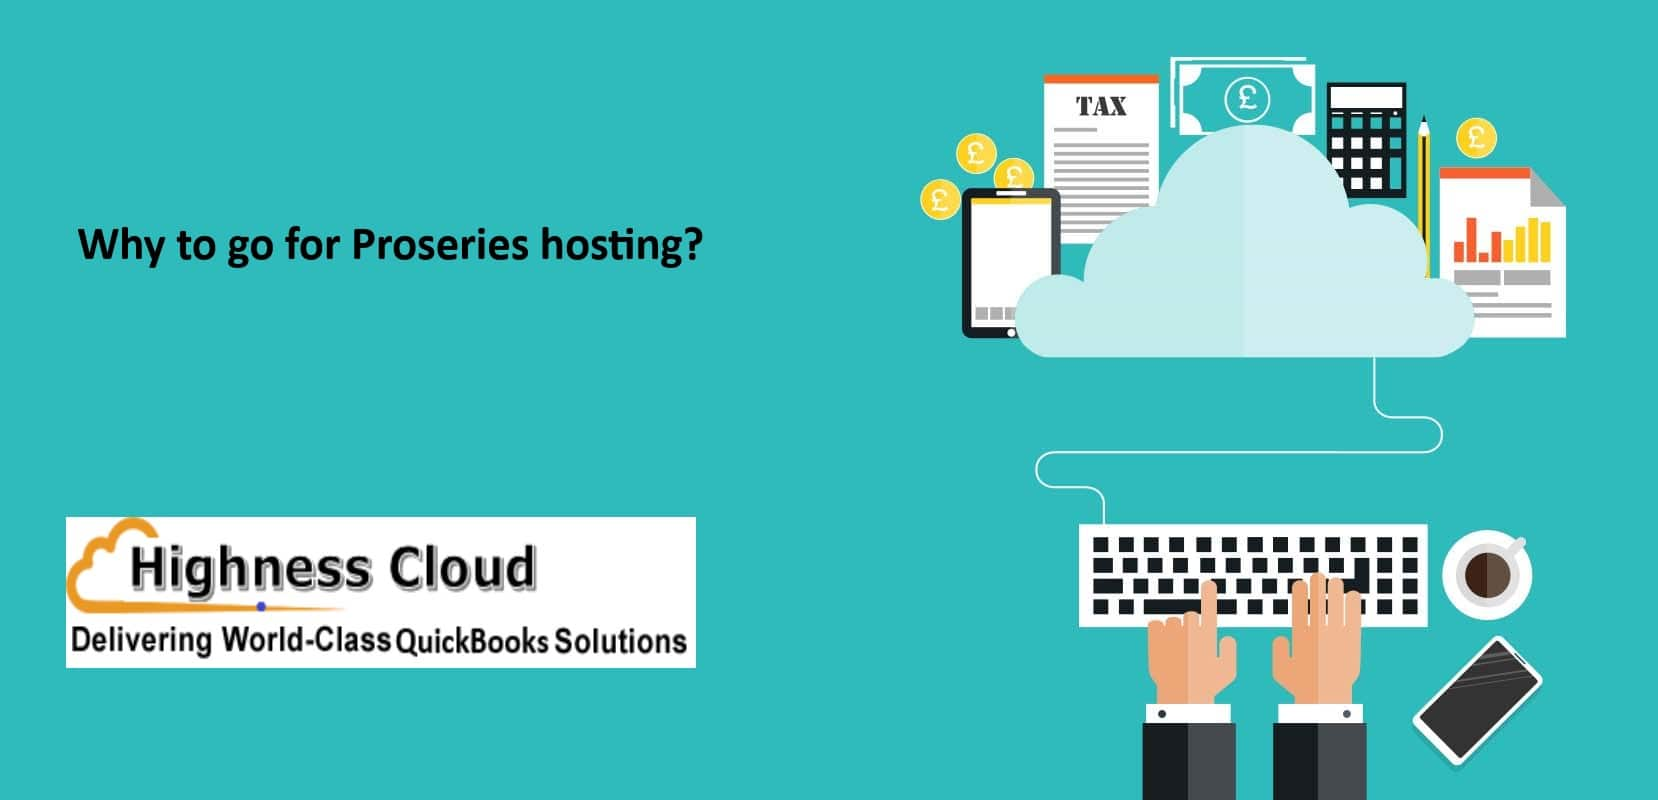 Proseries hosting on the cloud